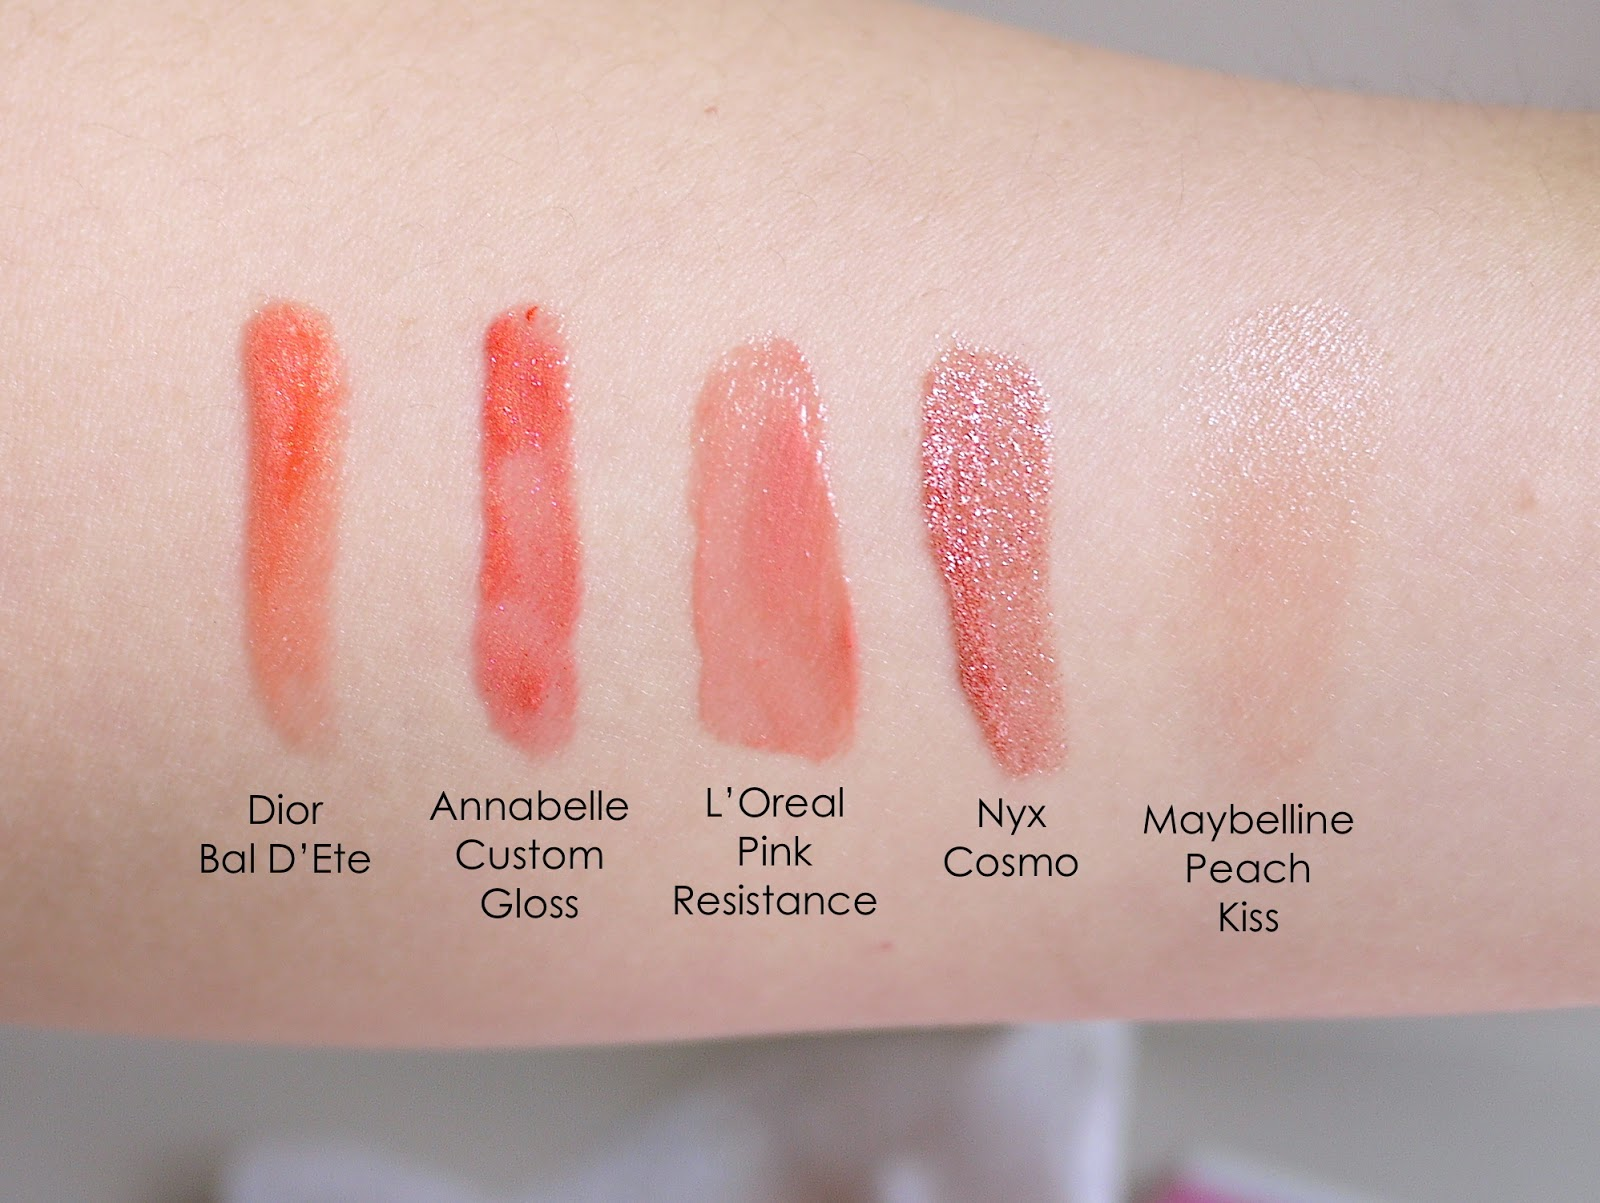 Dior Bal D'ete L'oreal pink resistance nyx cosmo maybelline peach kiss swatch